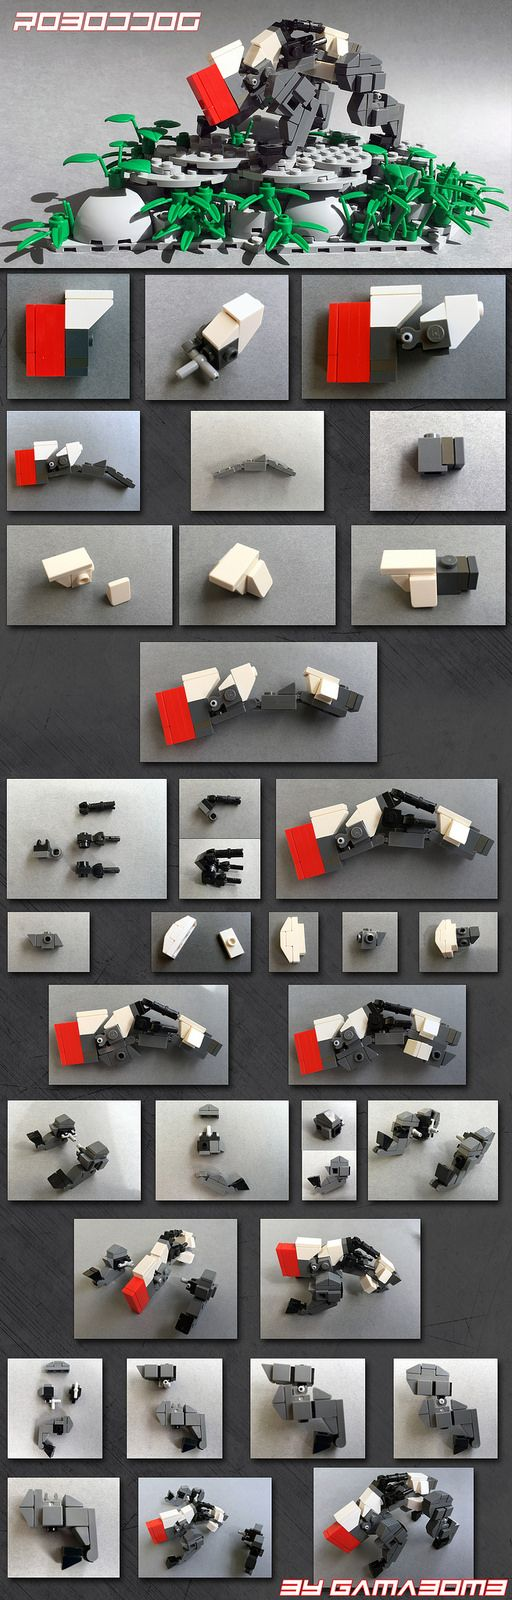 Mini Robodog Instruction | Here is the instruction for my mi… | Flickr